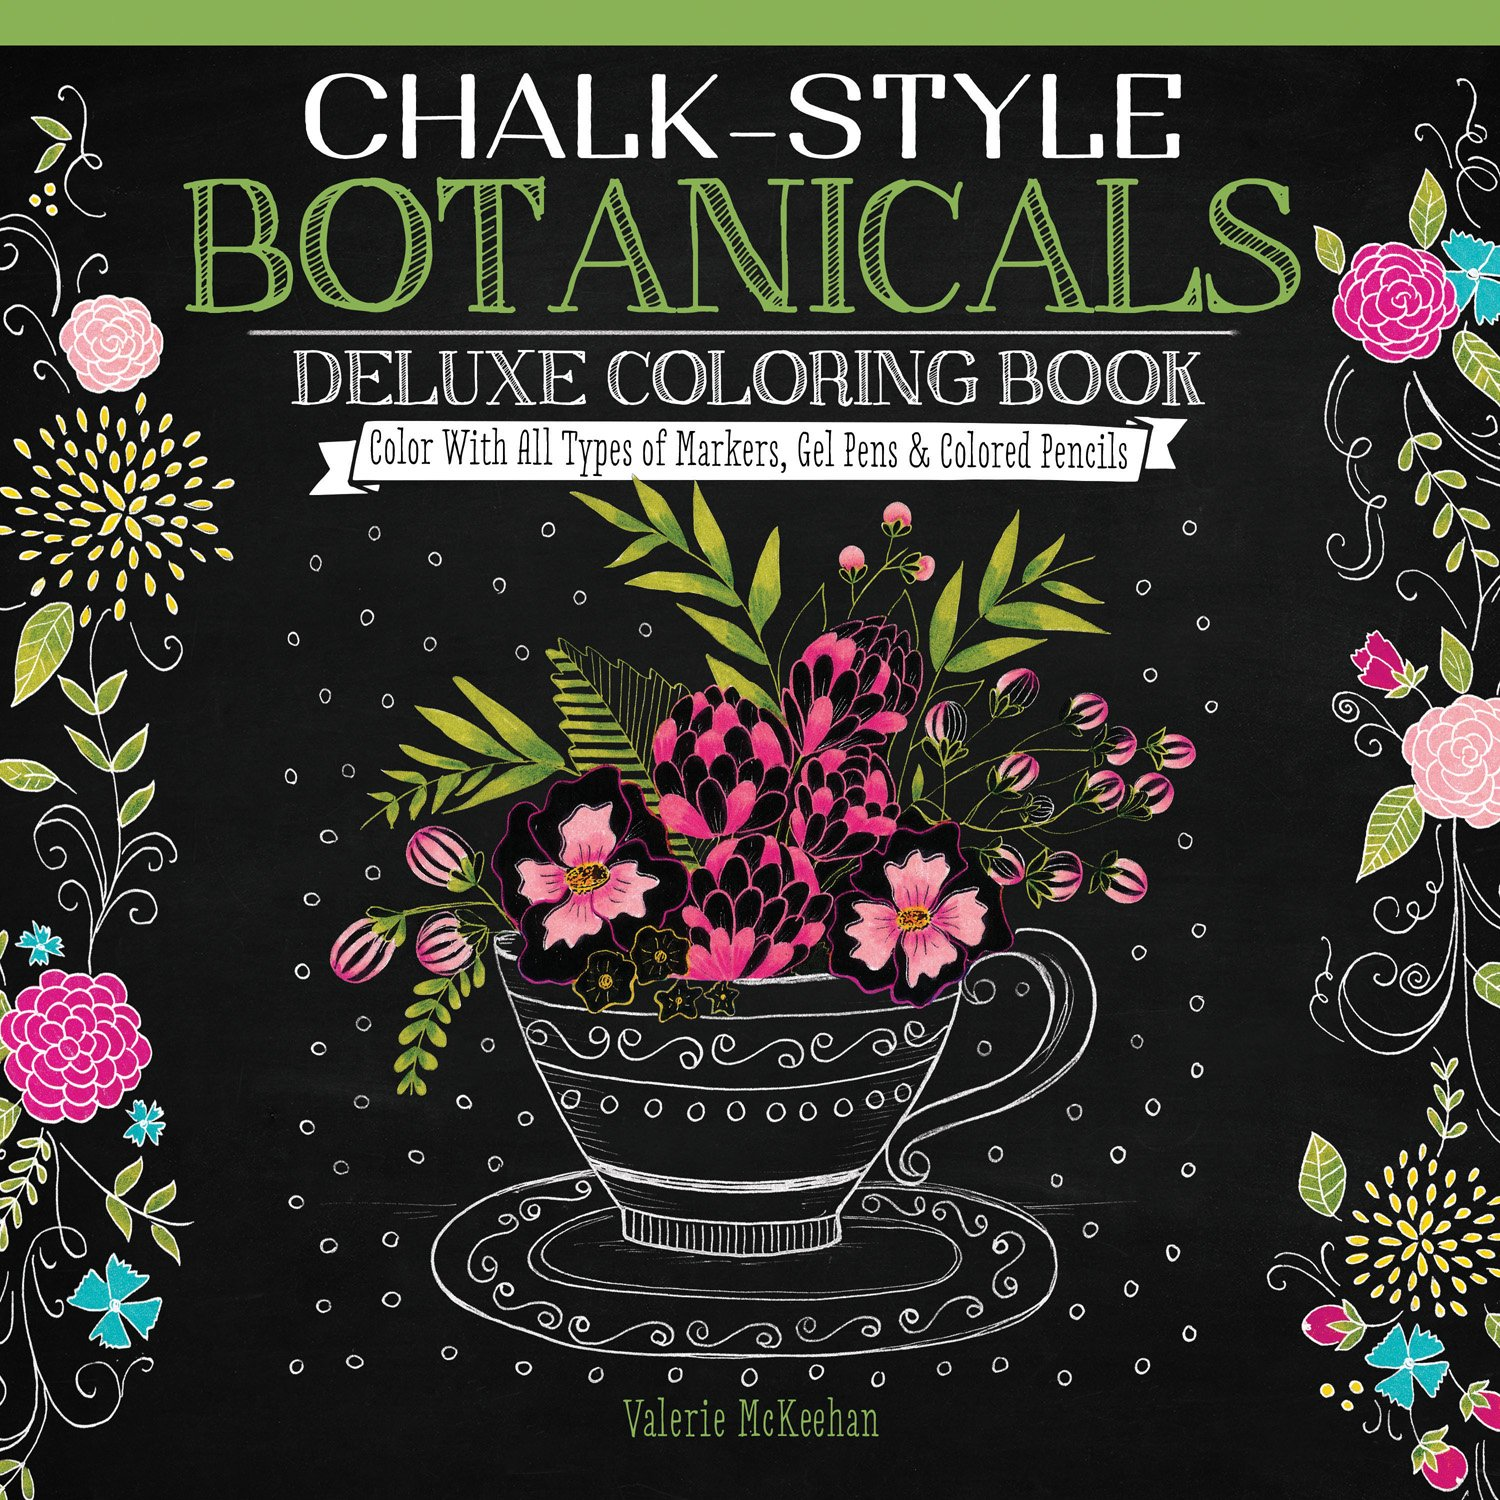 Download Chalk-Style Botanicals Deluxe Coloring Book: Color with All Types of Markers, Gel Pens & Colored Pencils (Design Originals) ebook